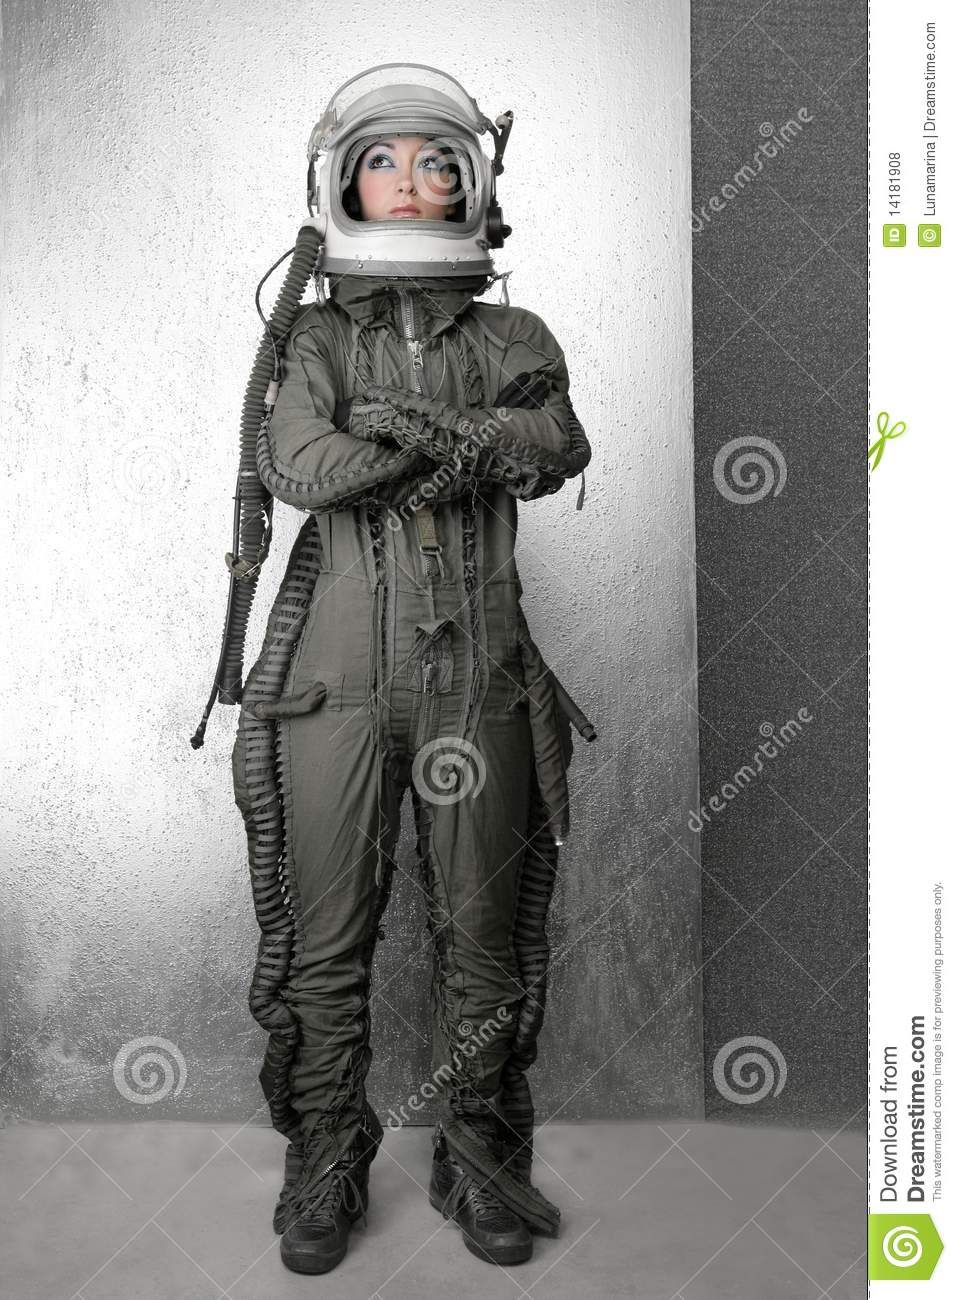 Astronaut fashion stand woman space suit helmet 14181908 for Female space suit